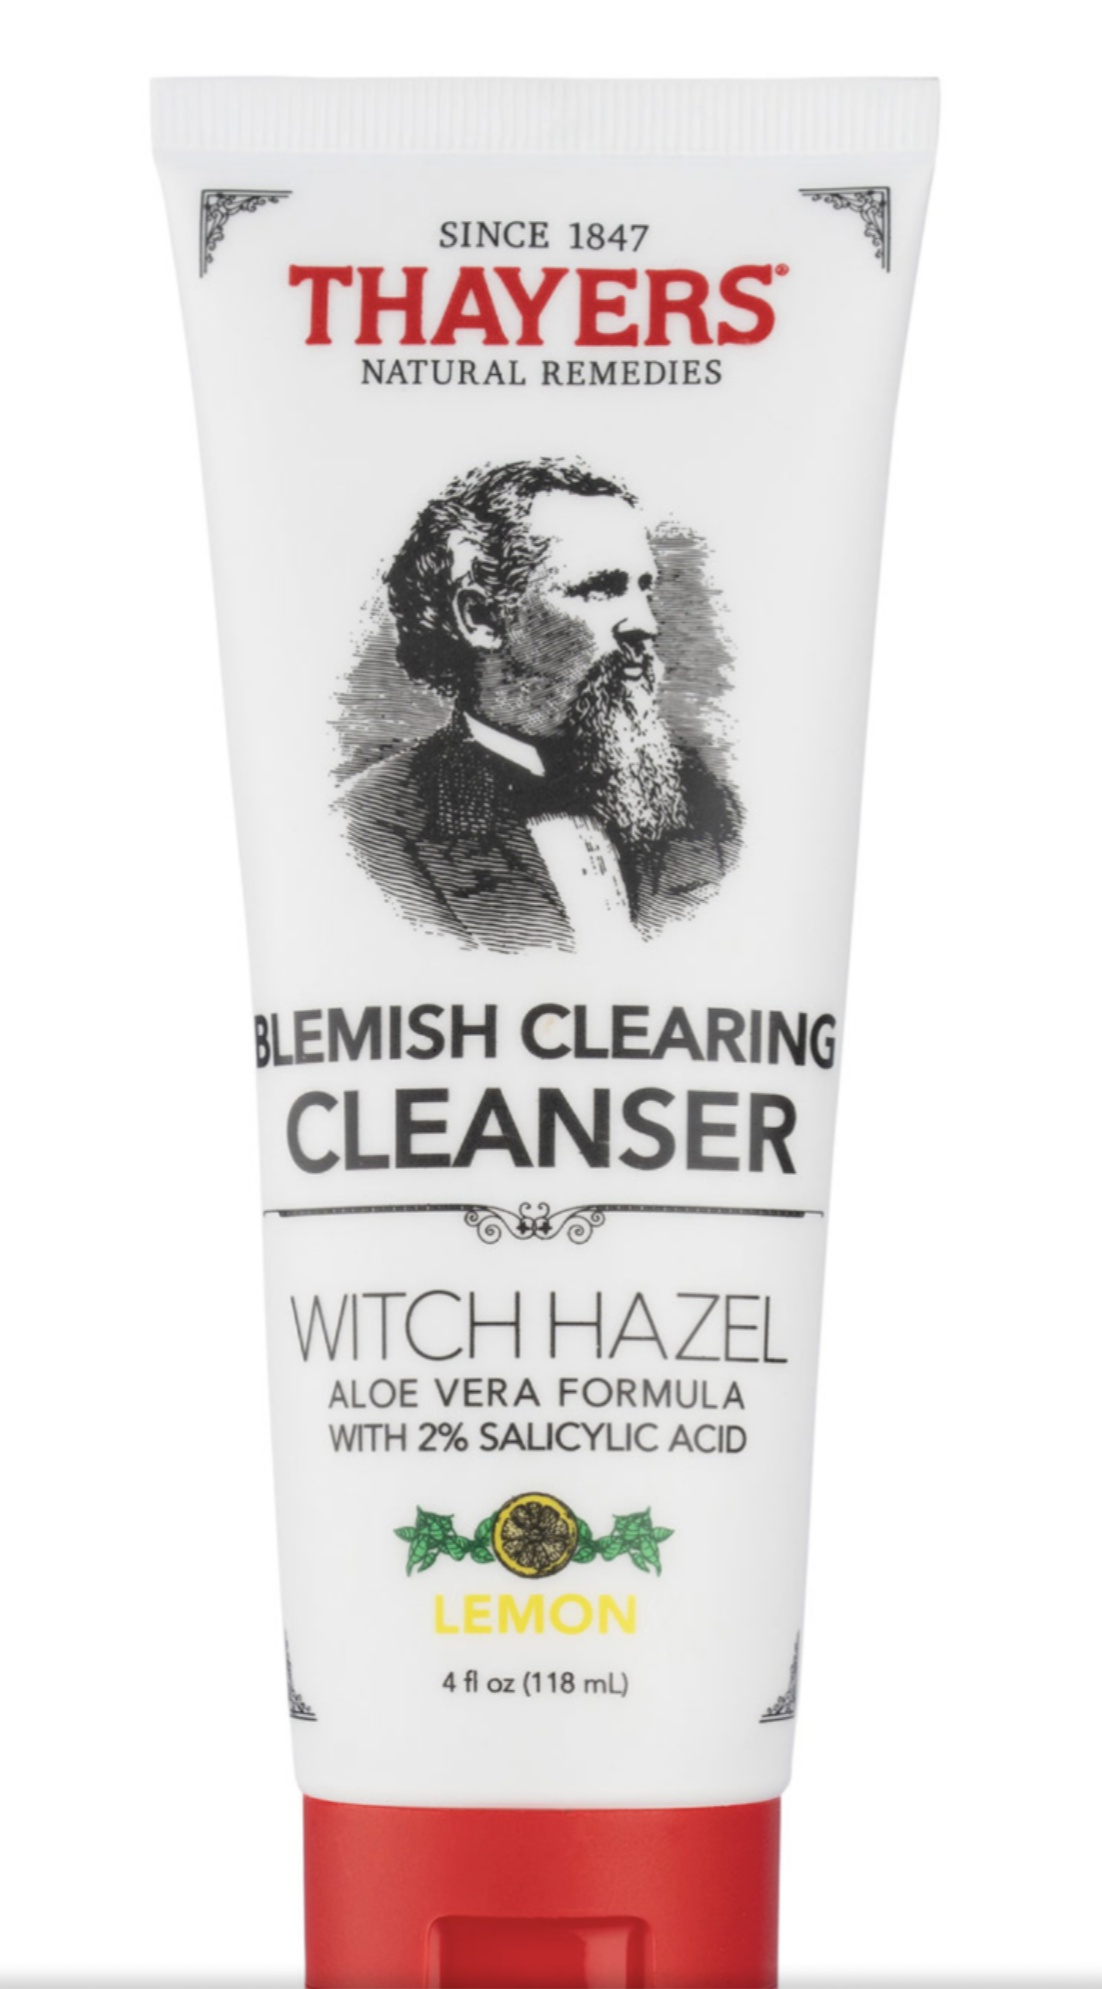 Thayers Blemish Clearing Cleanser